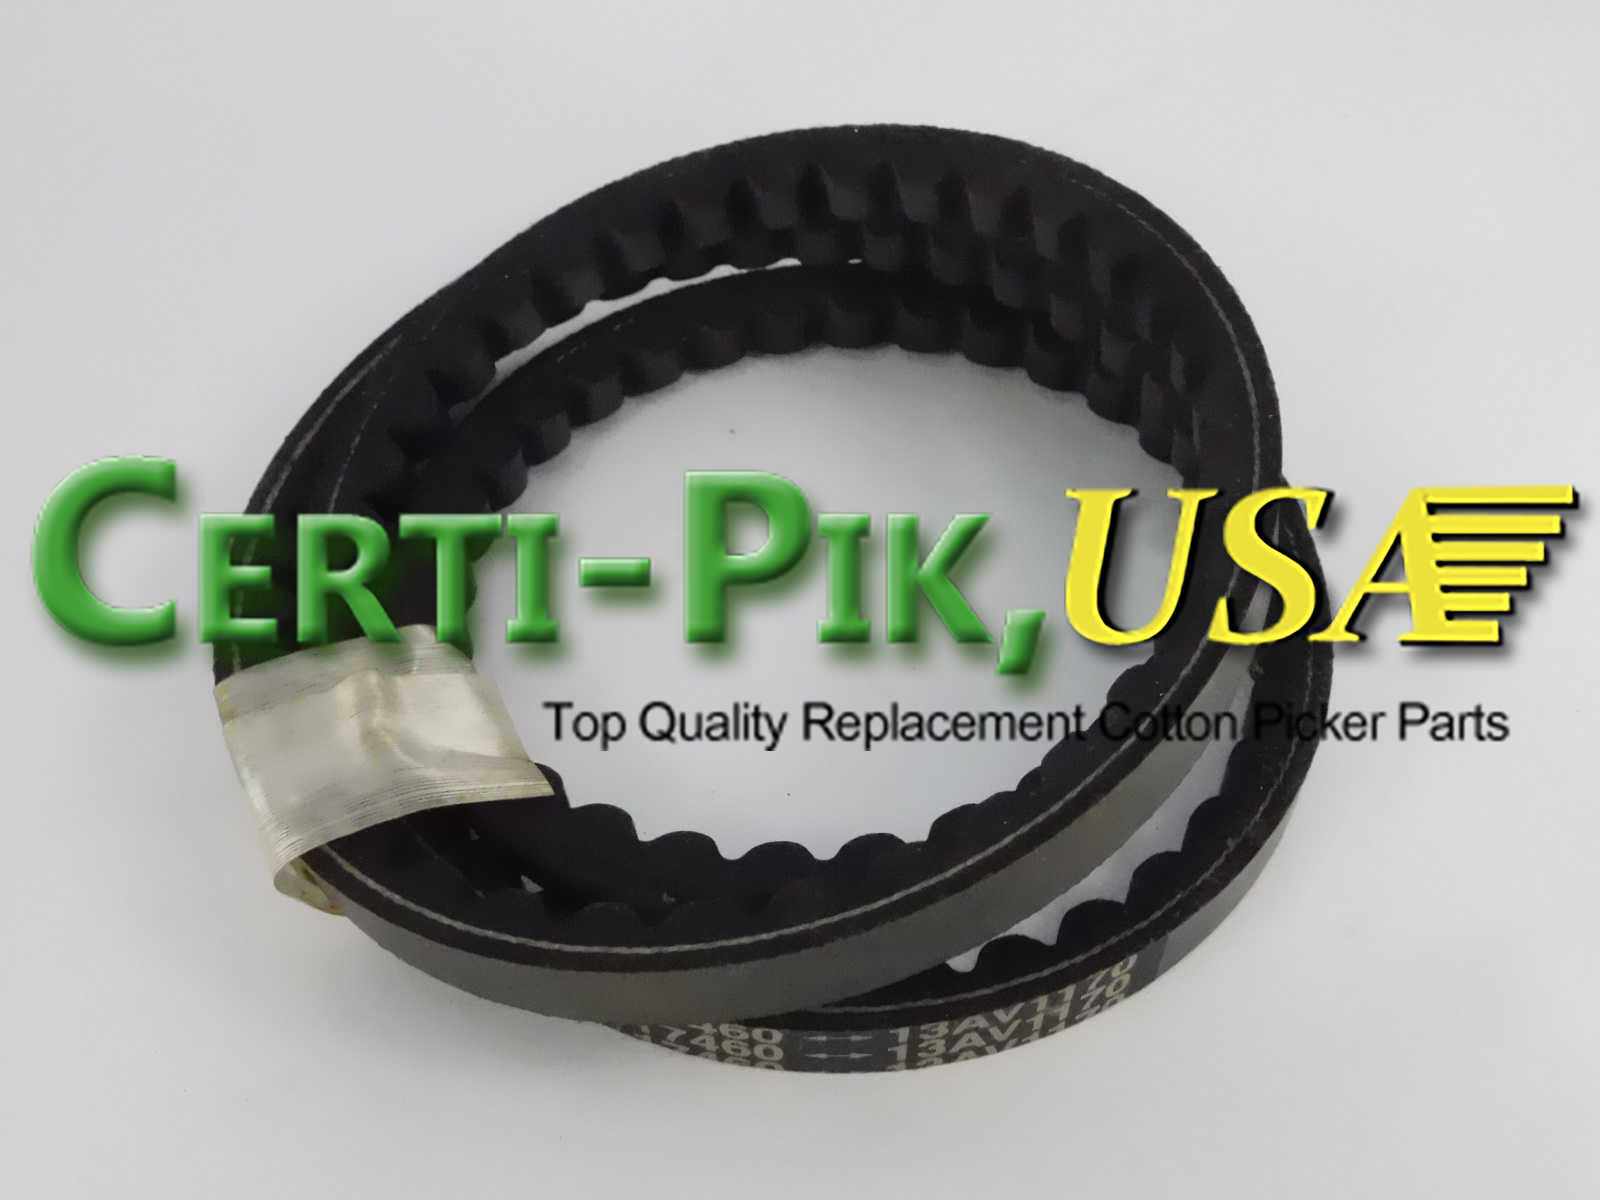 Belts: John Deere Replacement Belts - 9900 Thru CP690 N117674 (B17674) for Sale